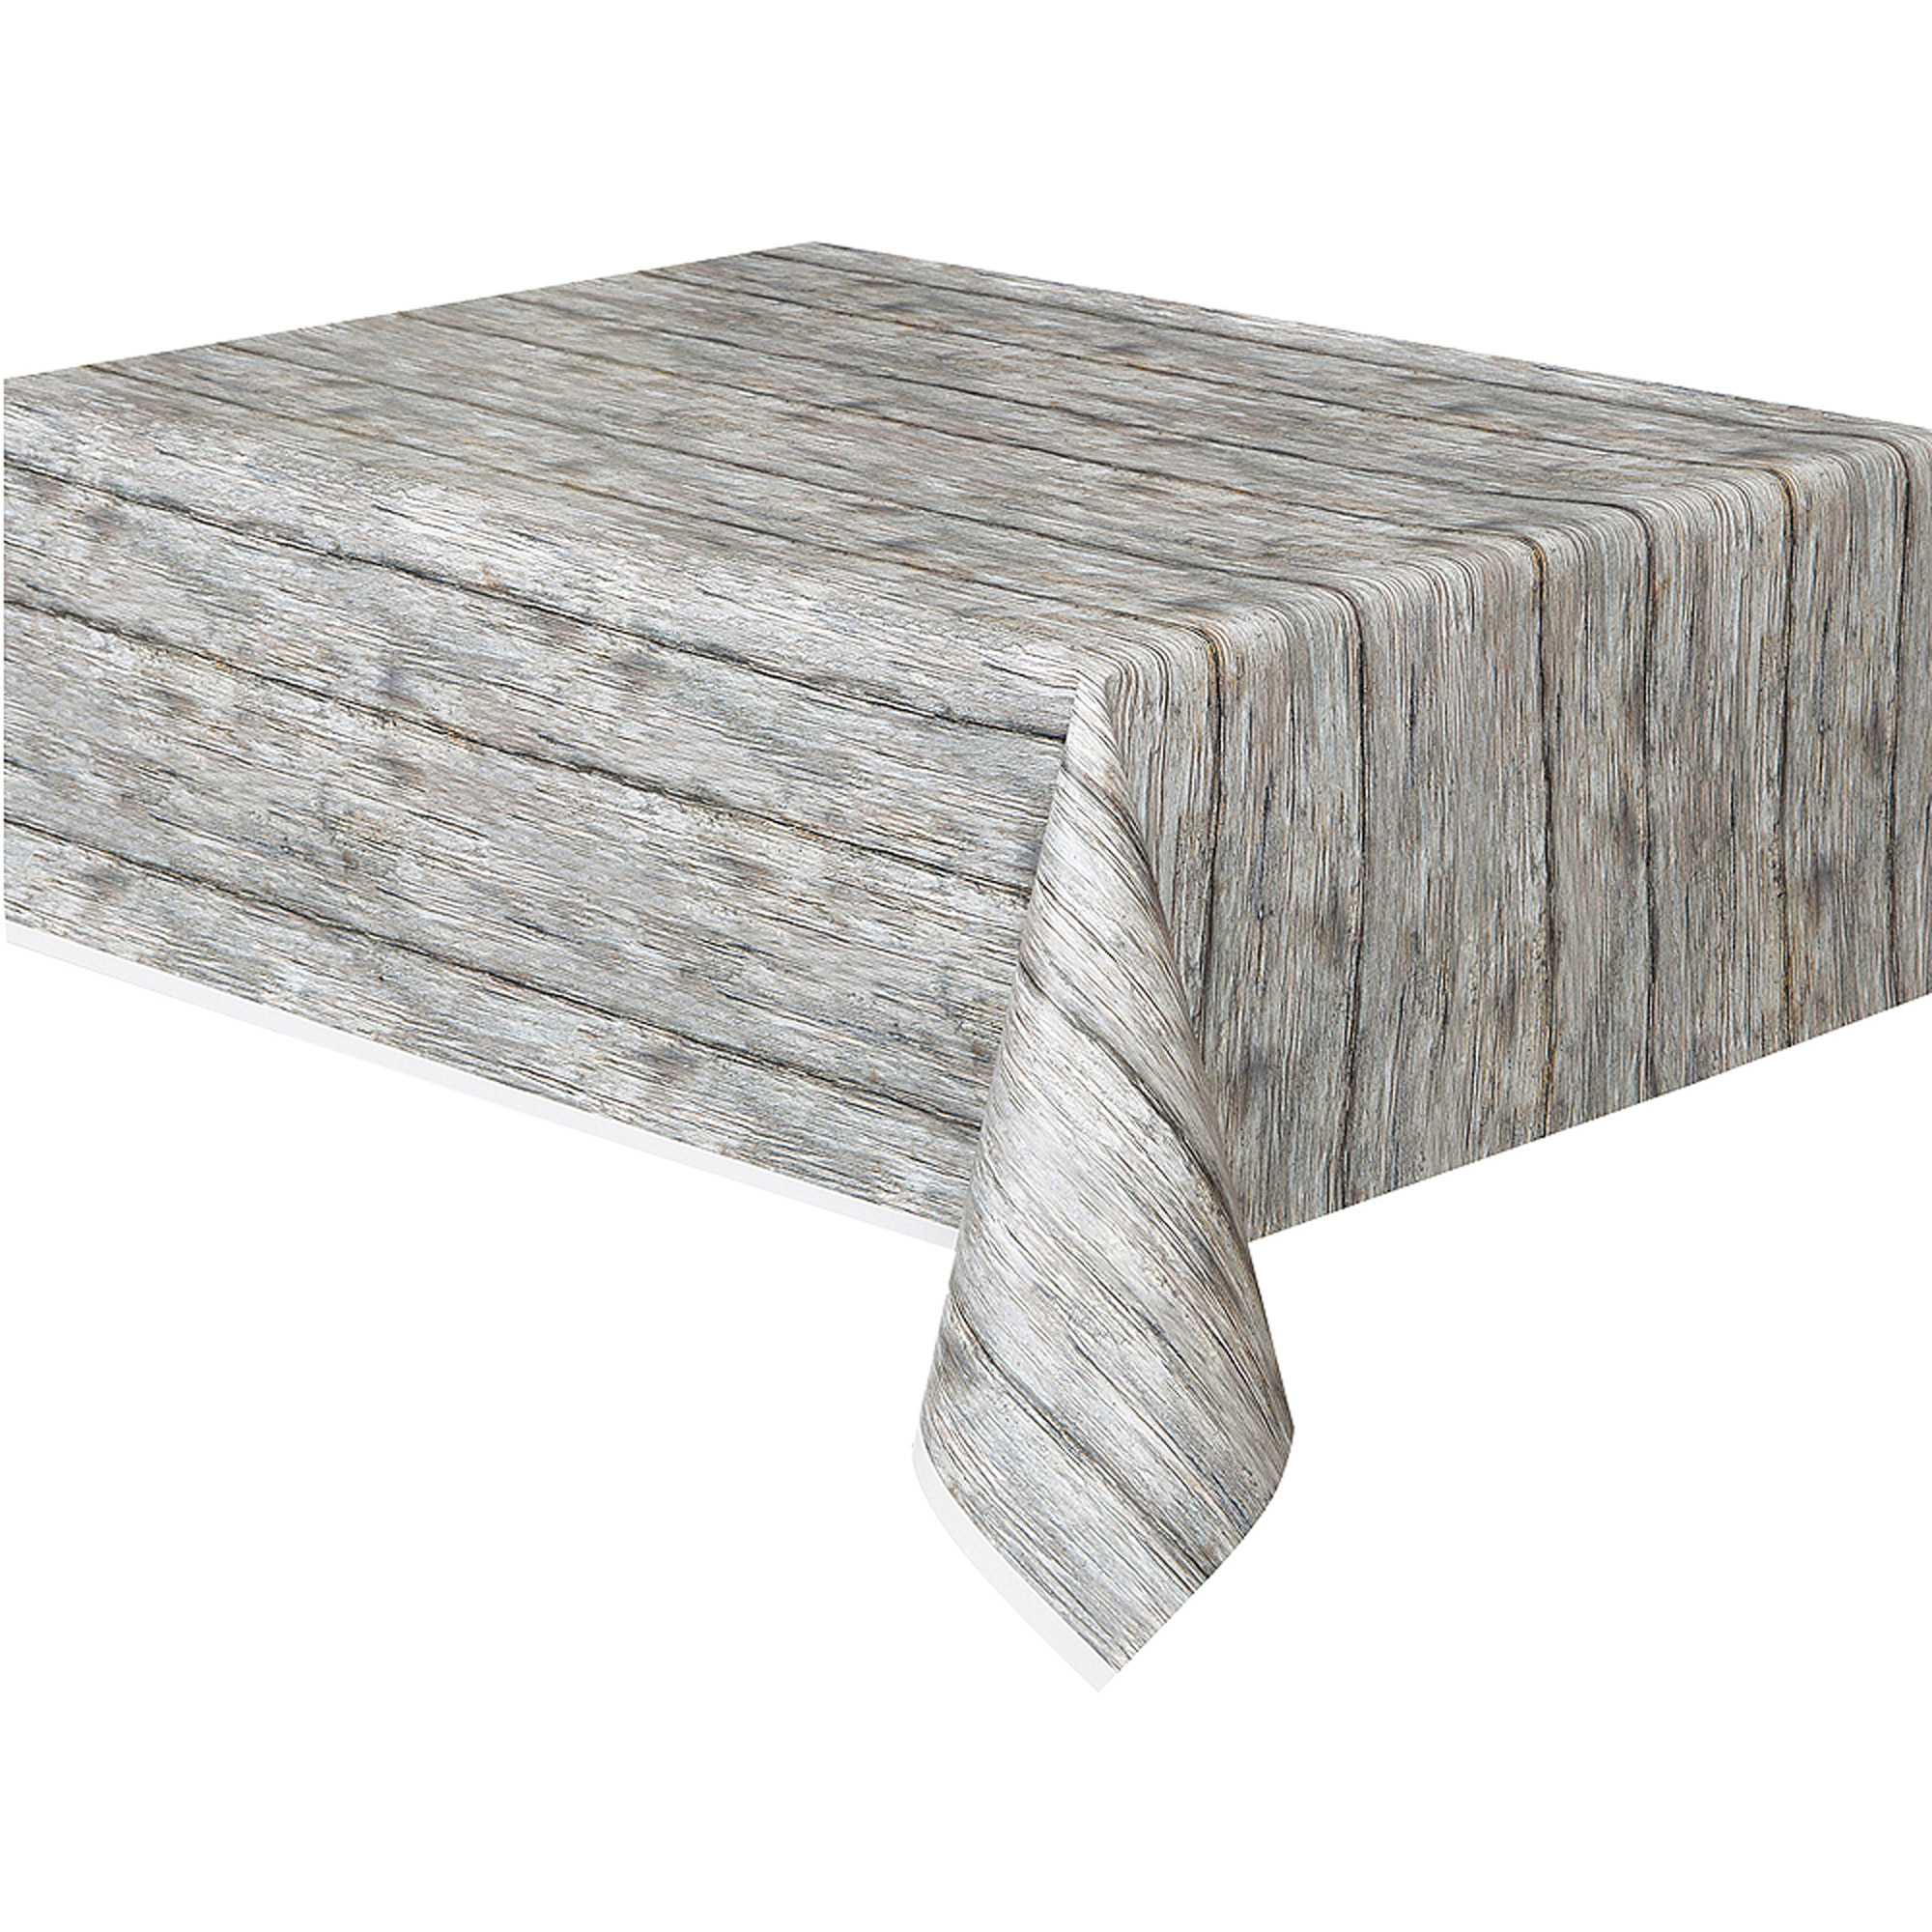 "Plastic Rustic Wood Table Cover, 108"" x 54"""